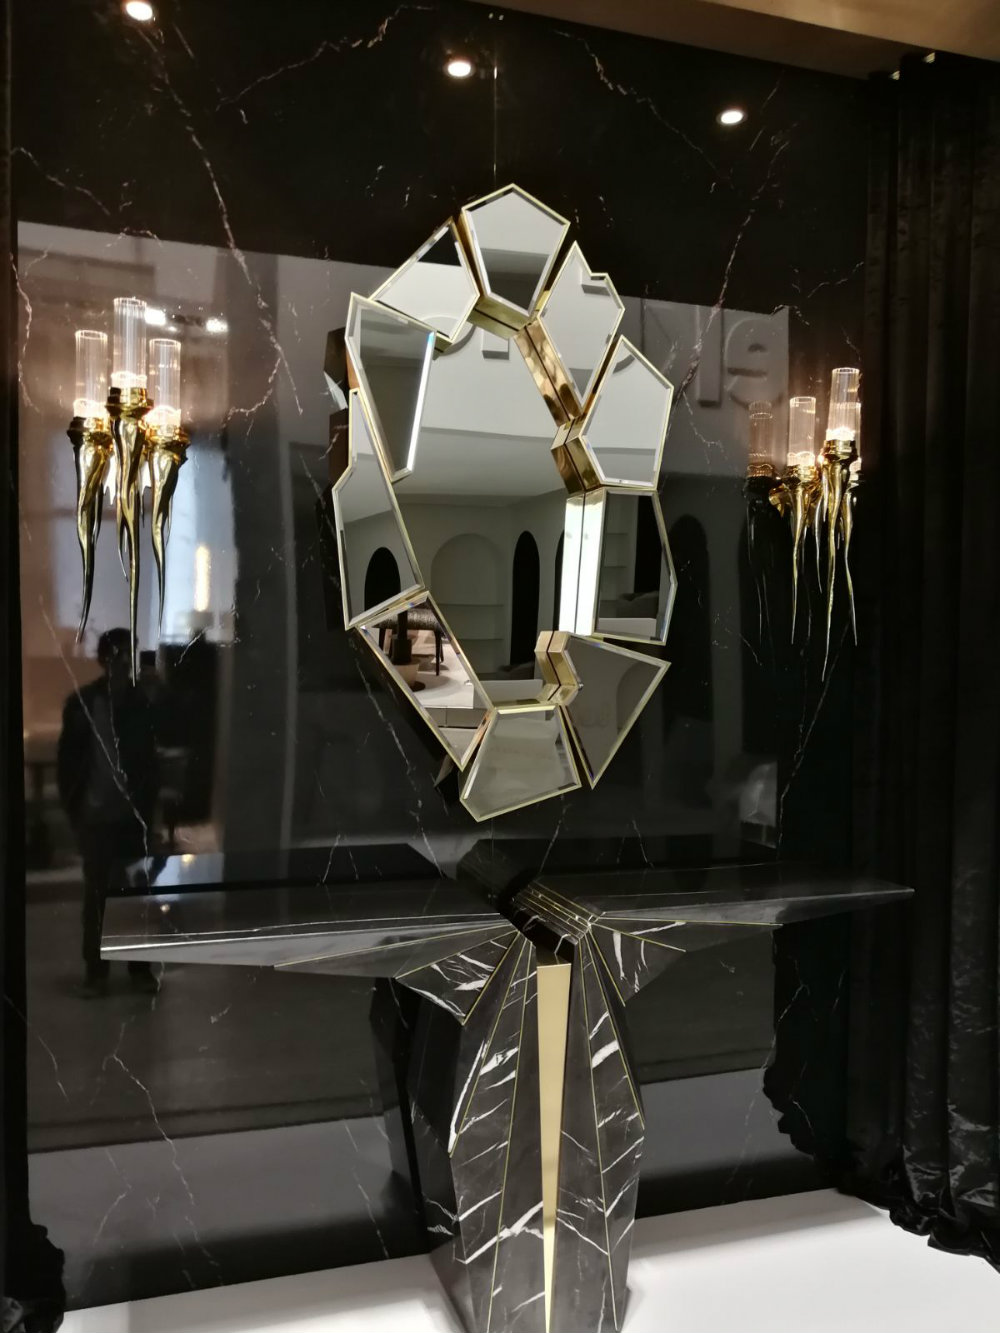 iSaloni 2018 Luxury Mirror Designs We Are Loving 03 isaloni 2018 iSaloni 2018: Luxury Mirror Designs We Are Loving iSaloni 2018 Luxury Mirror Designs We Are Loving 03